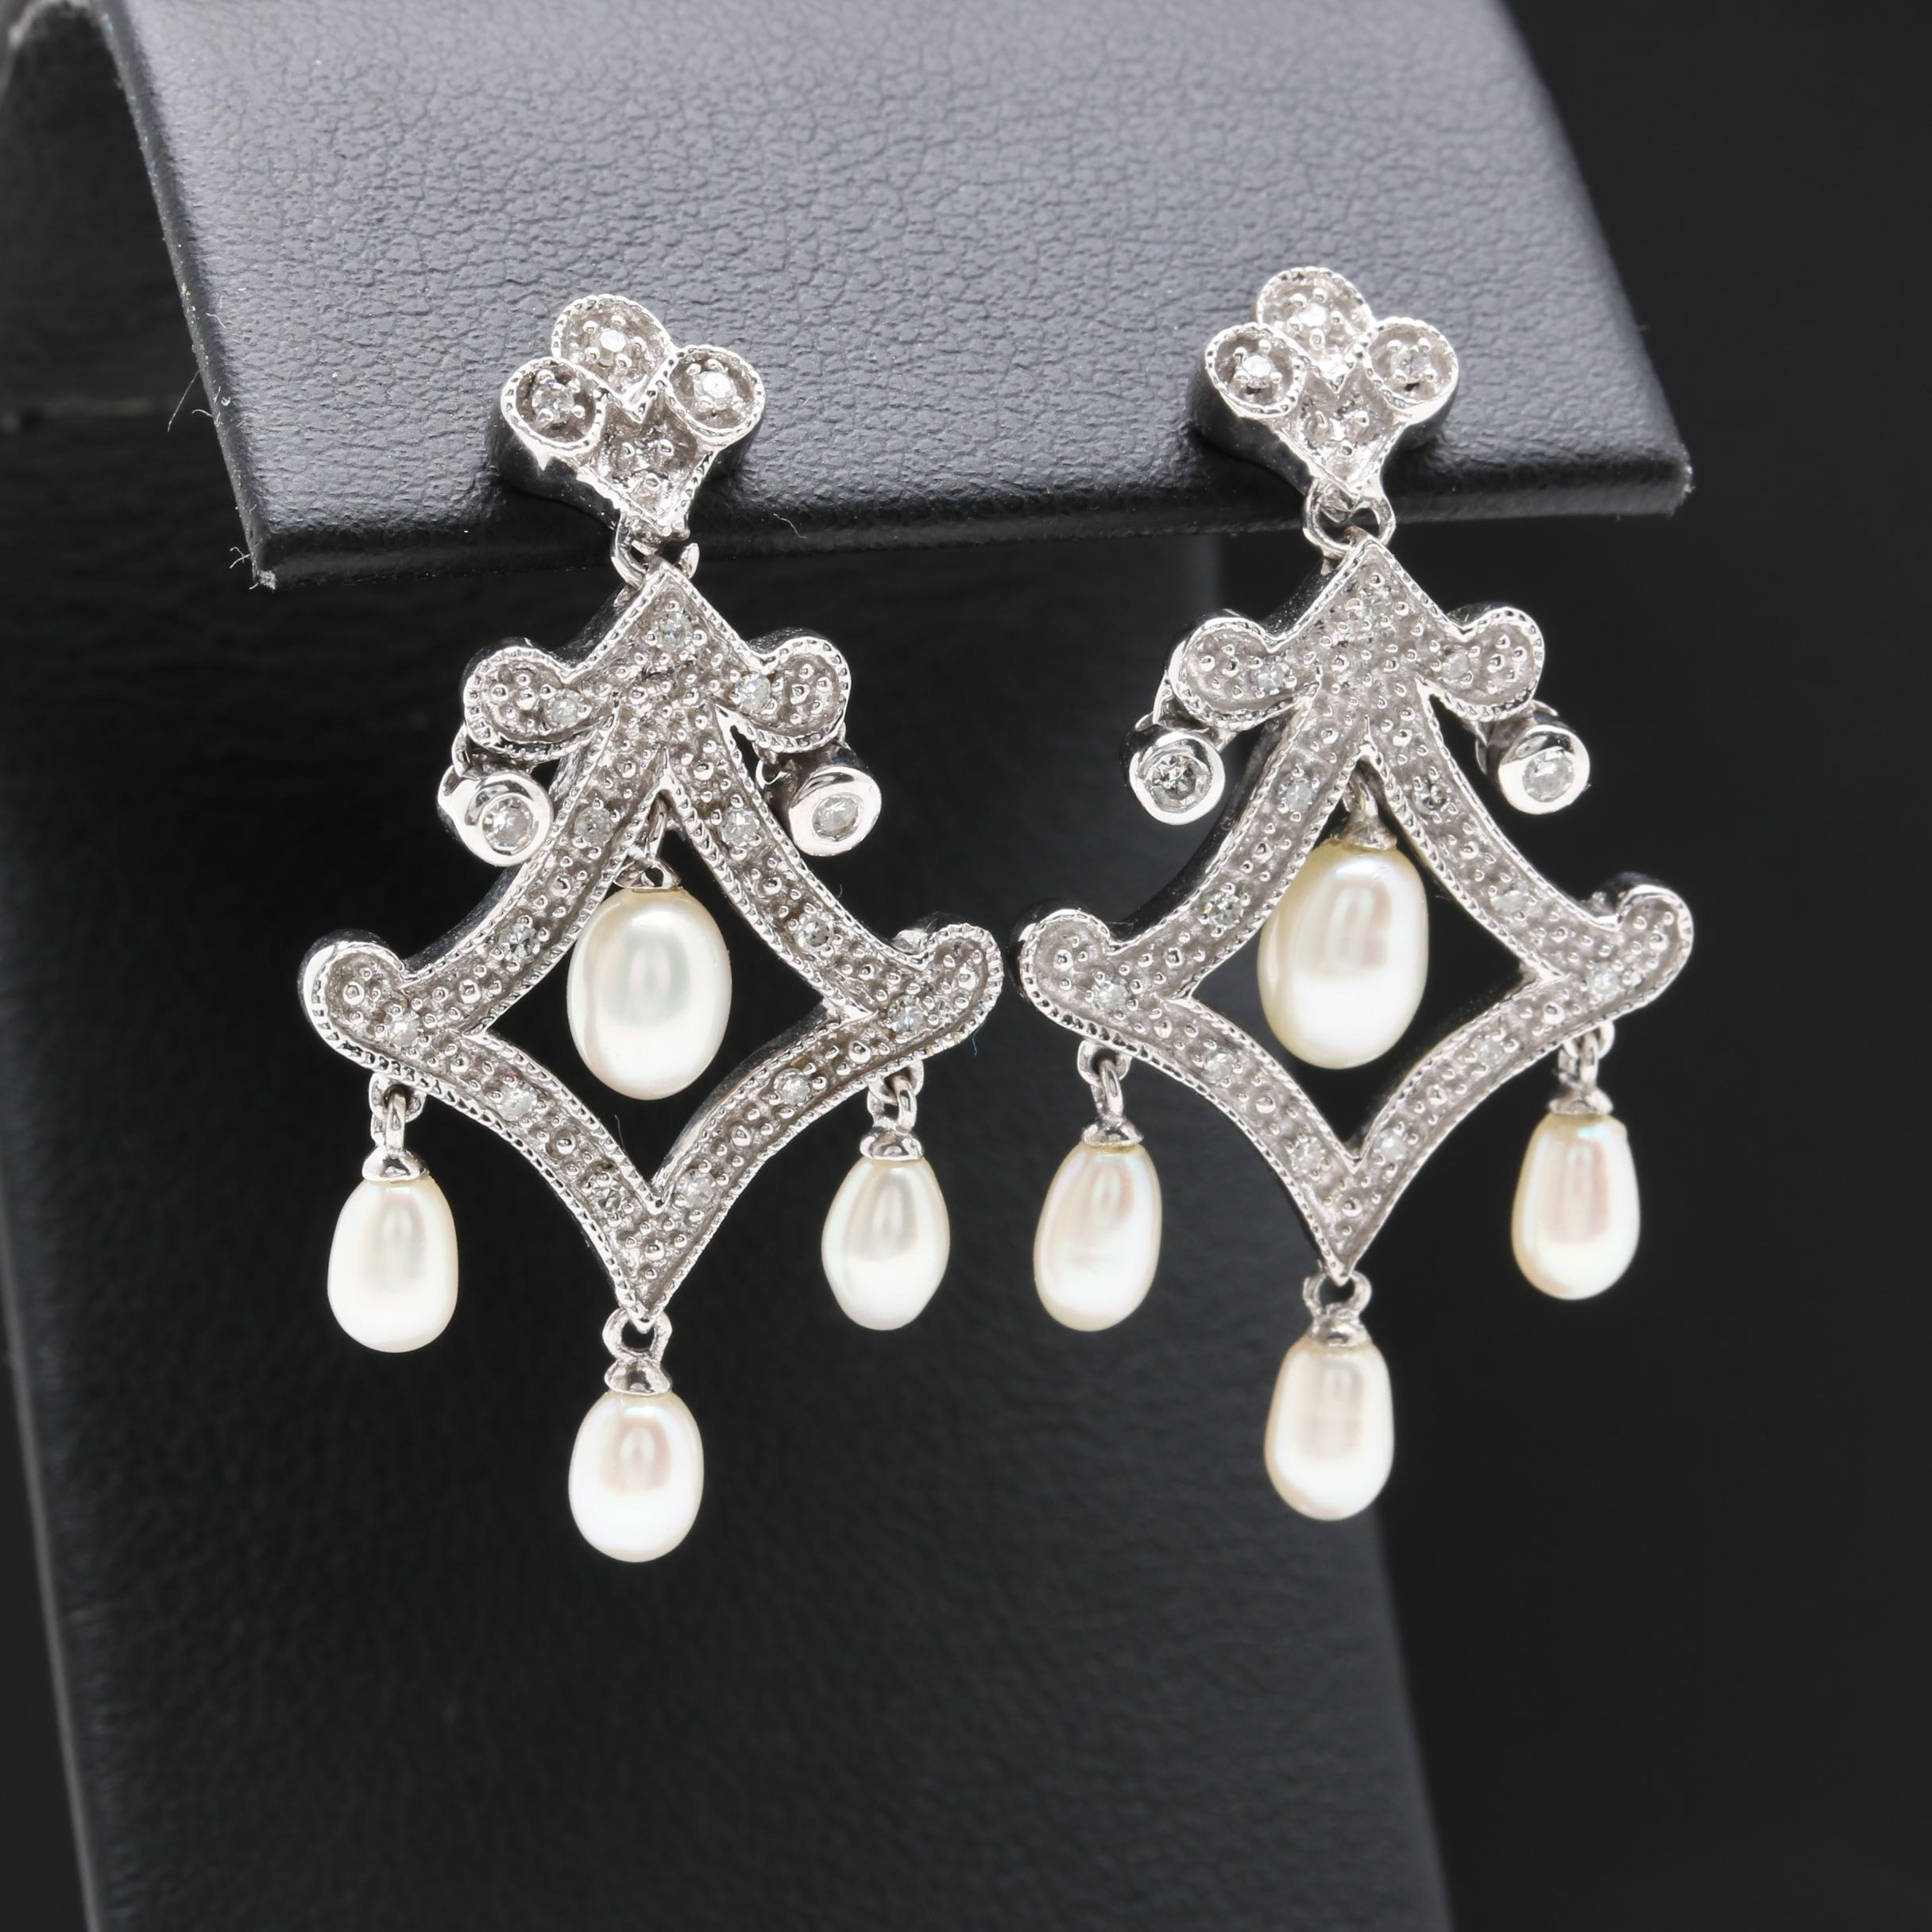 10K and 14K White Gold Cultured Pearl and Diamond Chandelier Earrings